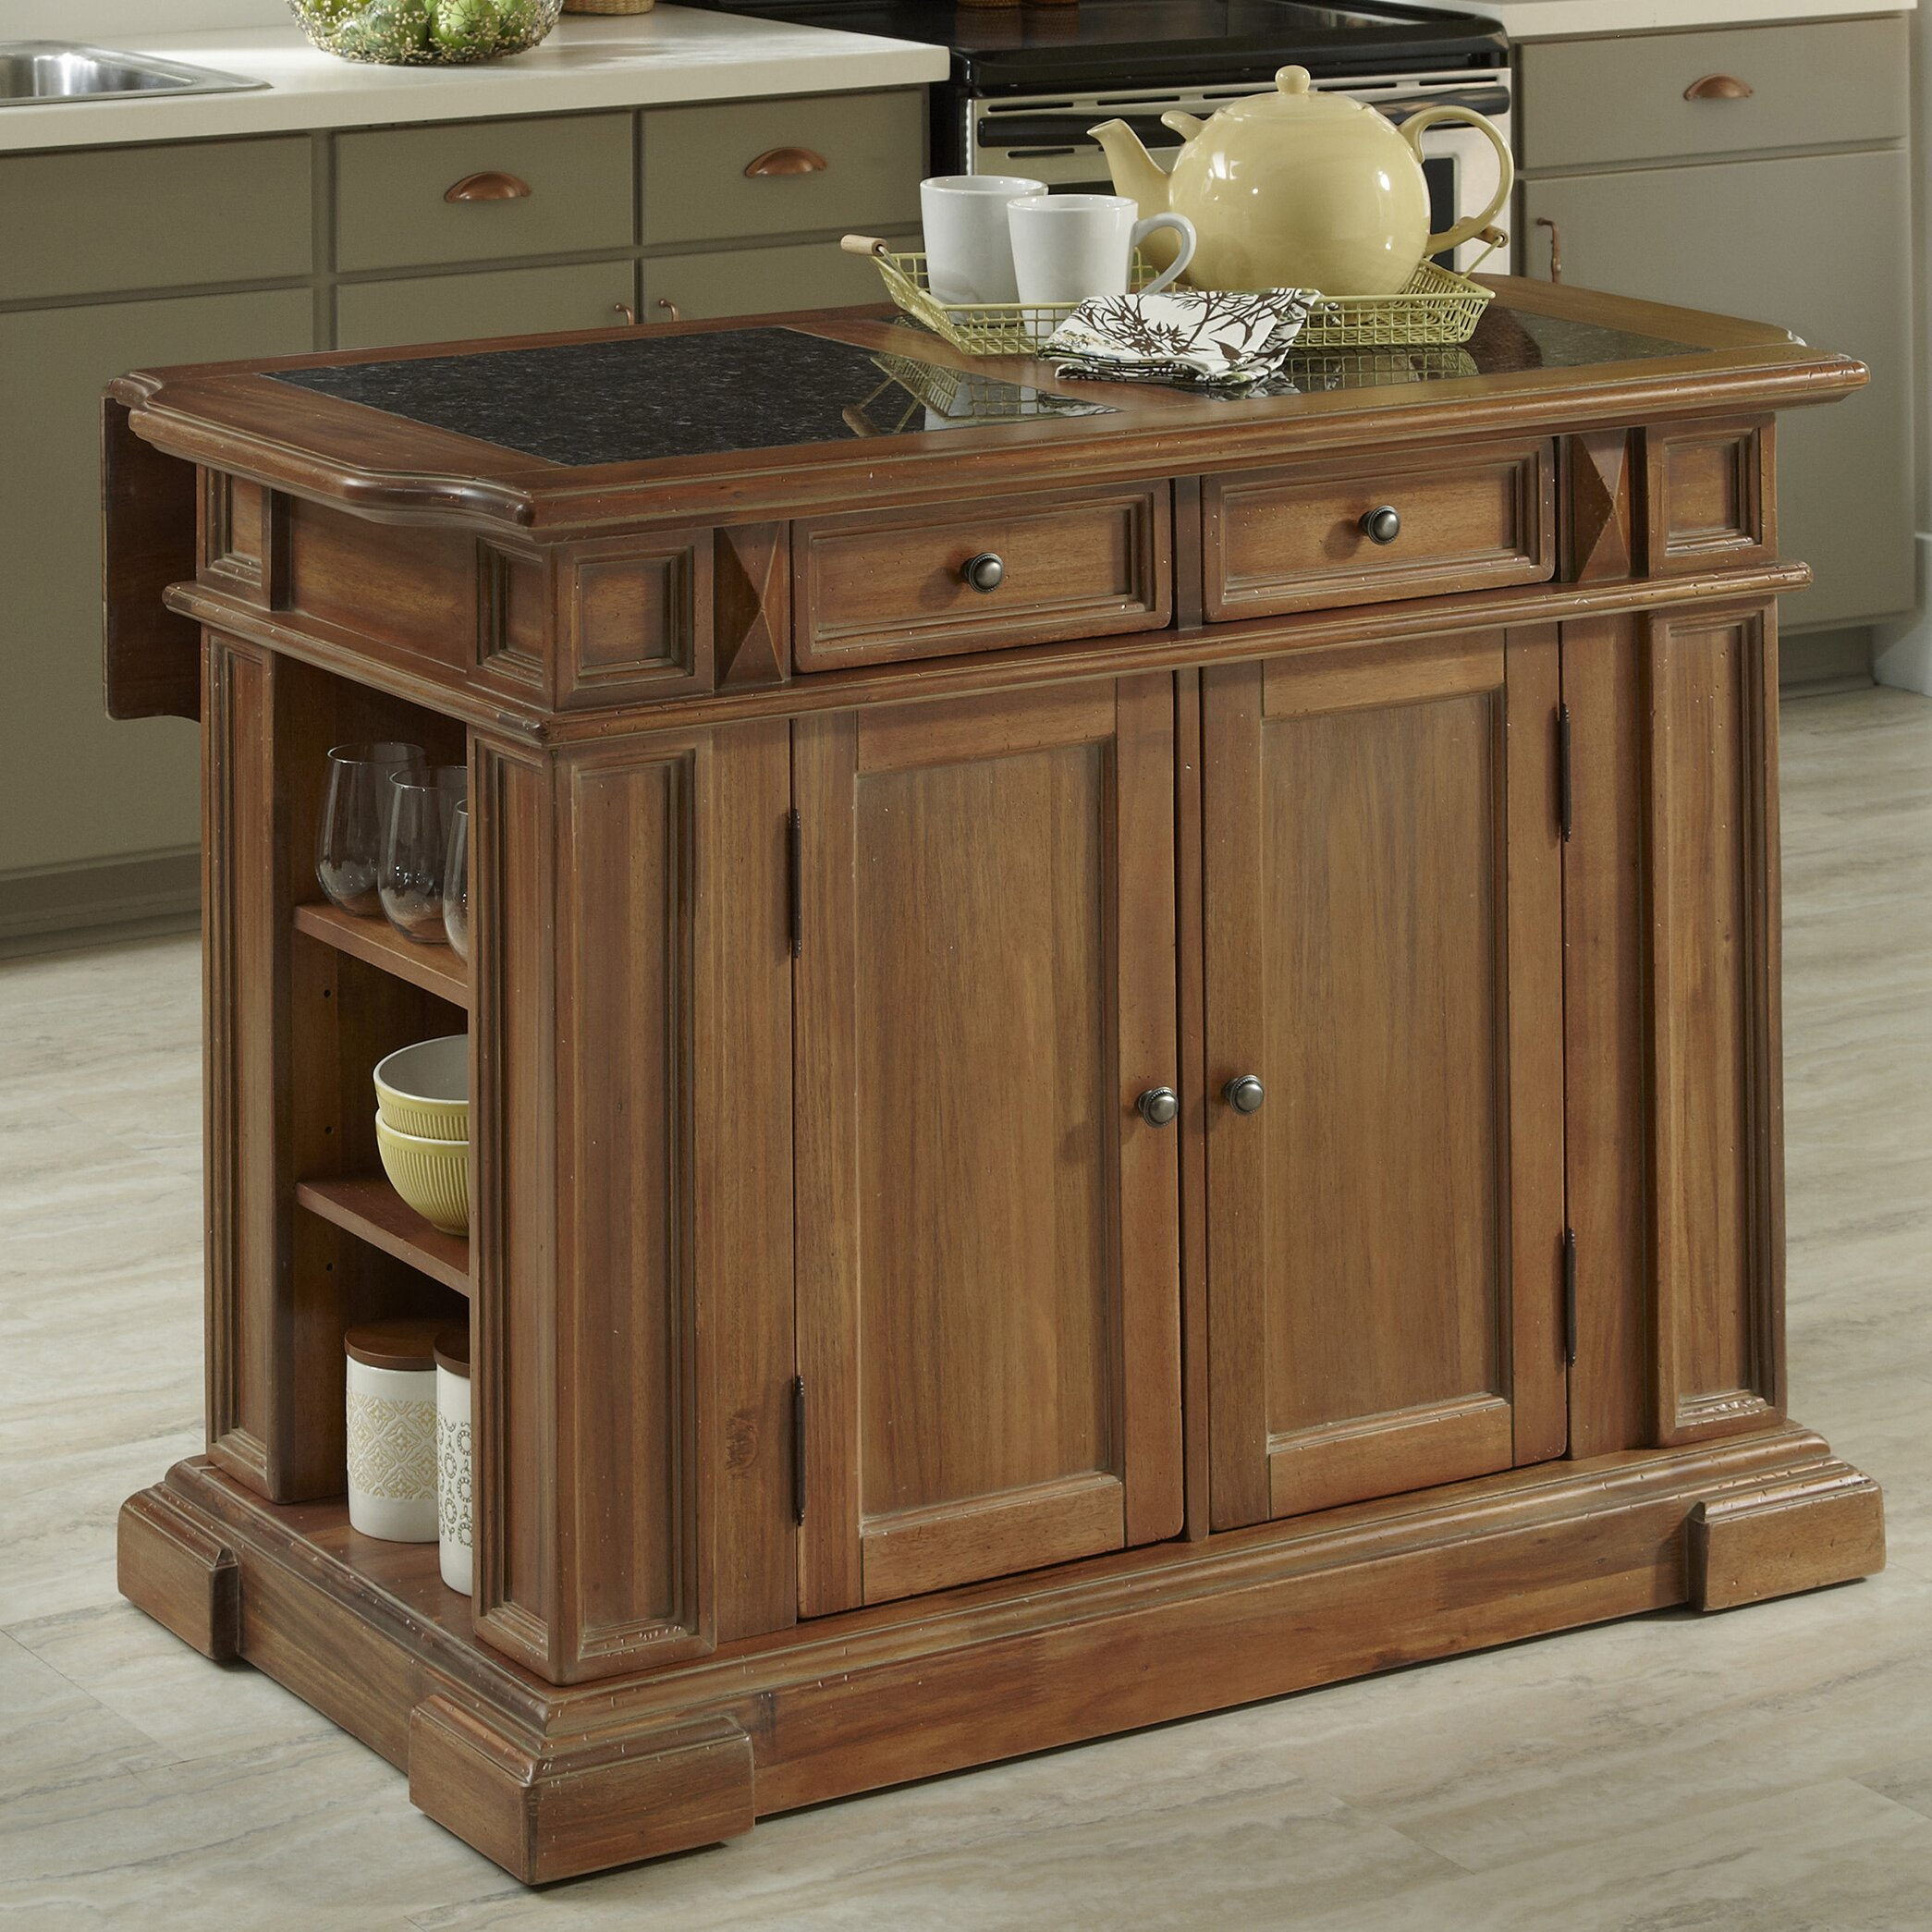 Home styles americana kitchen island with granite top for Americana style house